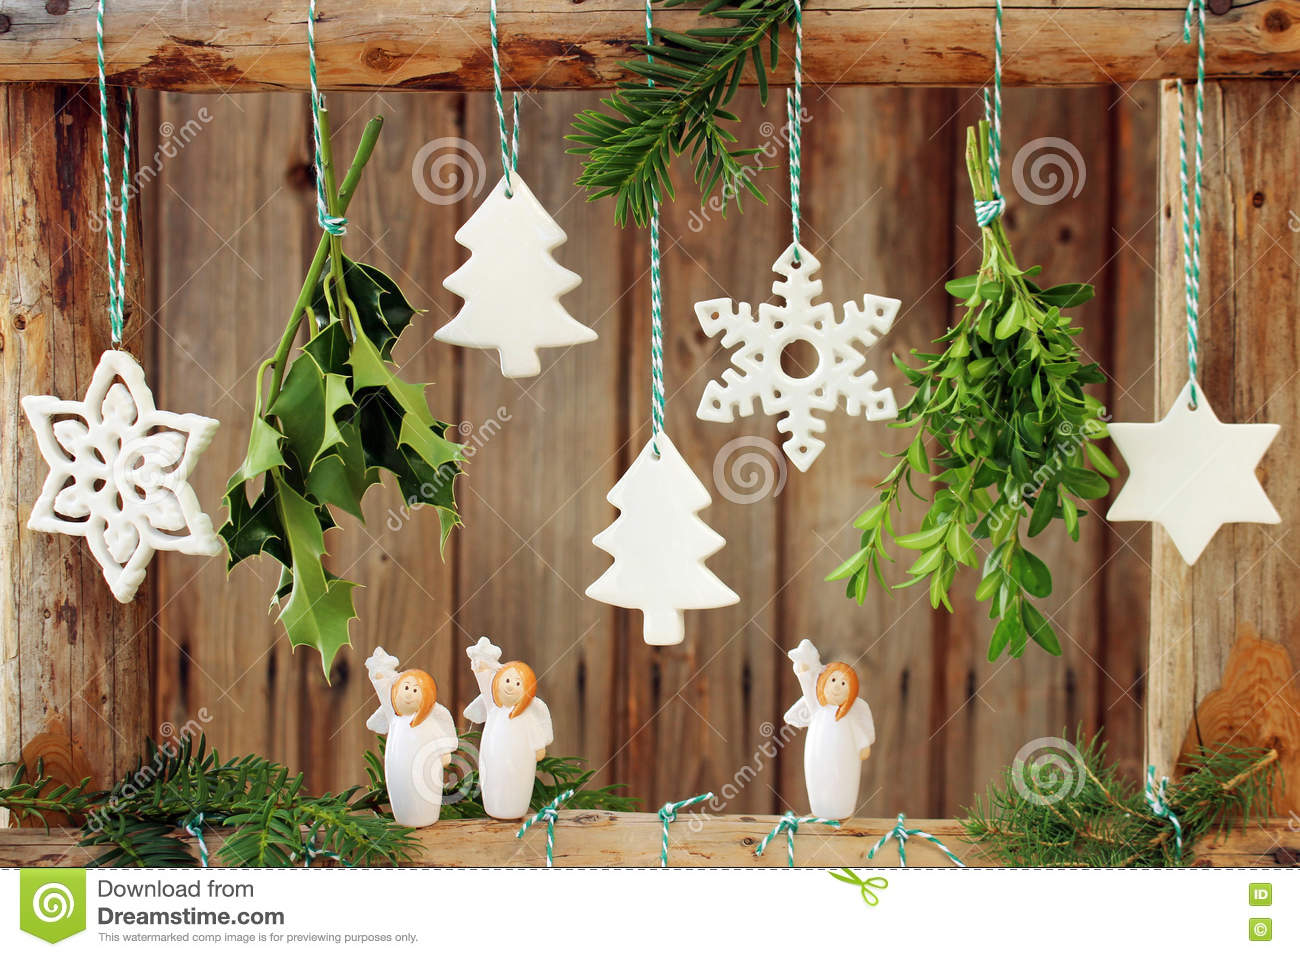 christmas decorations on wooden fence - Christmas Fence Decorations